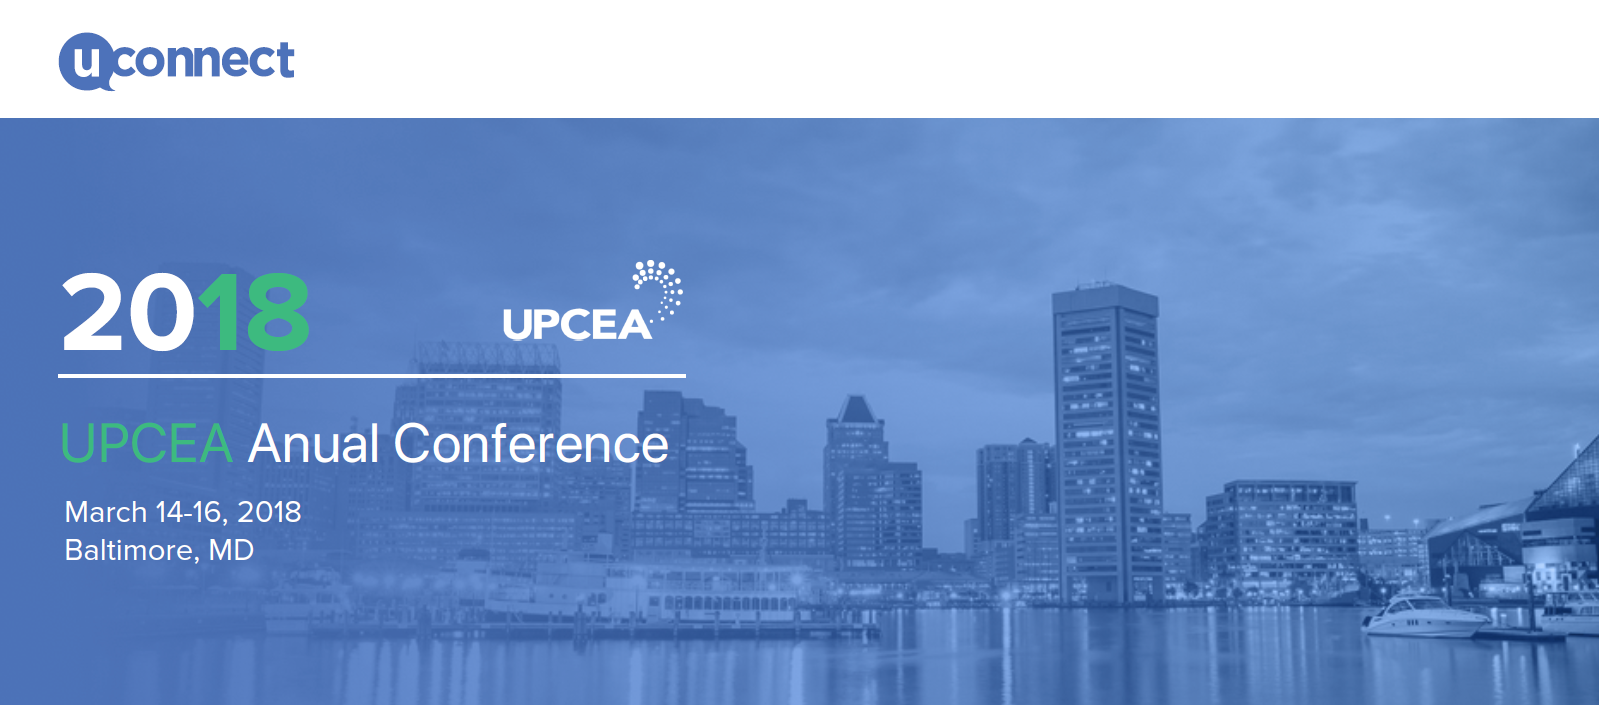 Cupcakes, Surveys and Career Advancement at the 2018 UPCEA Annual Conference